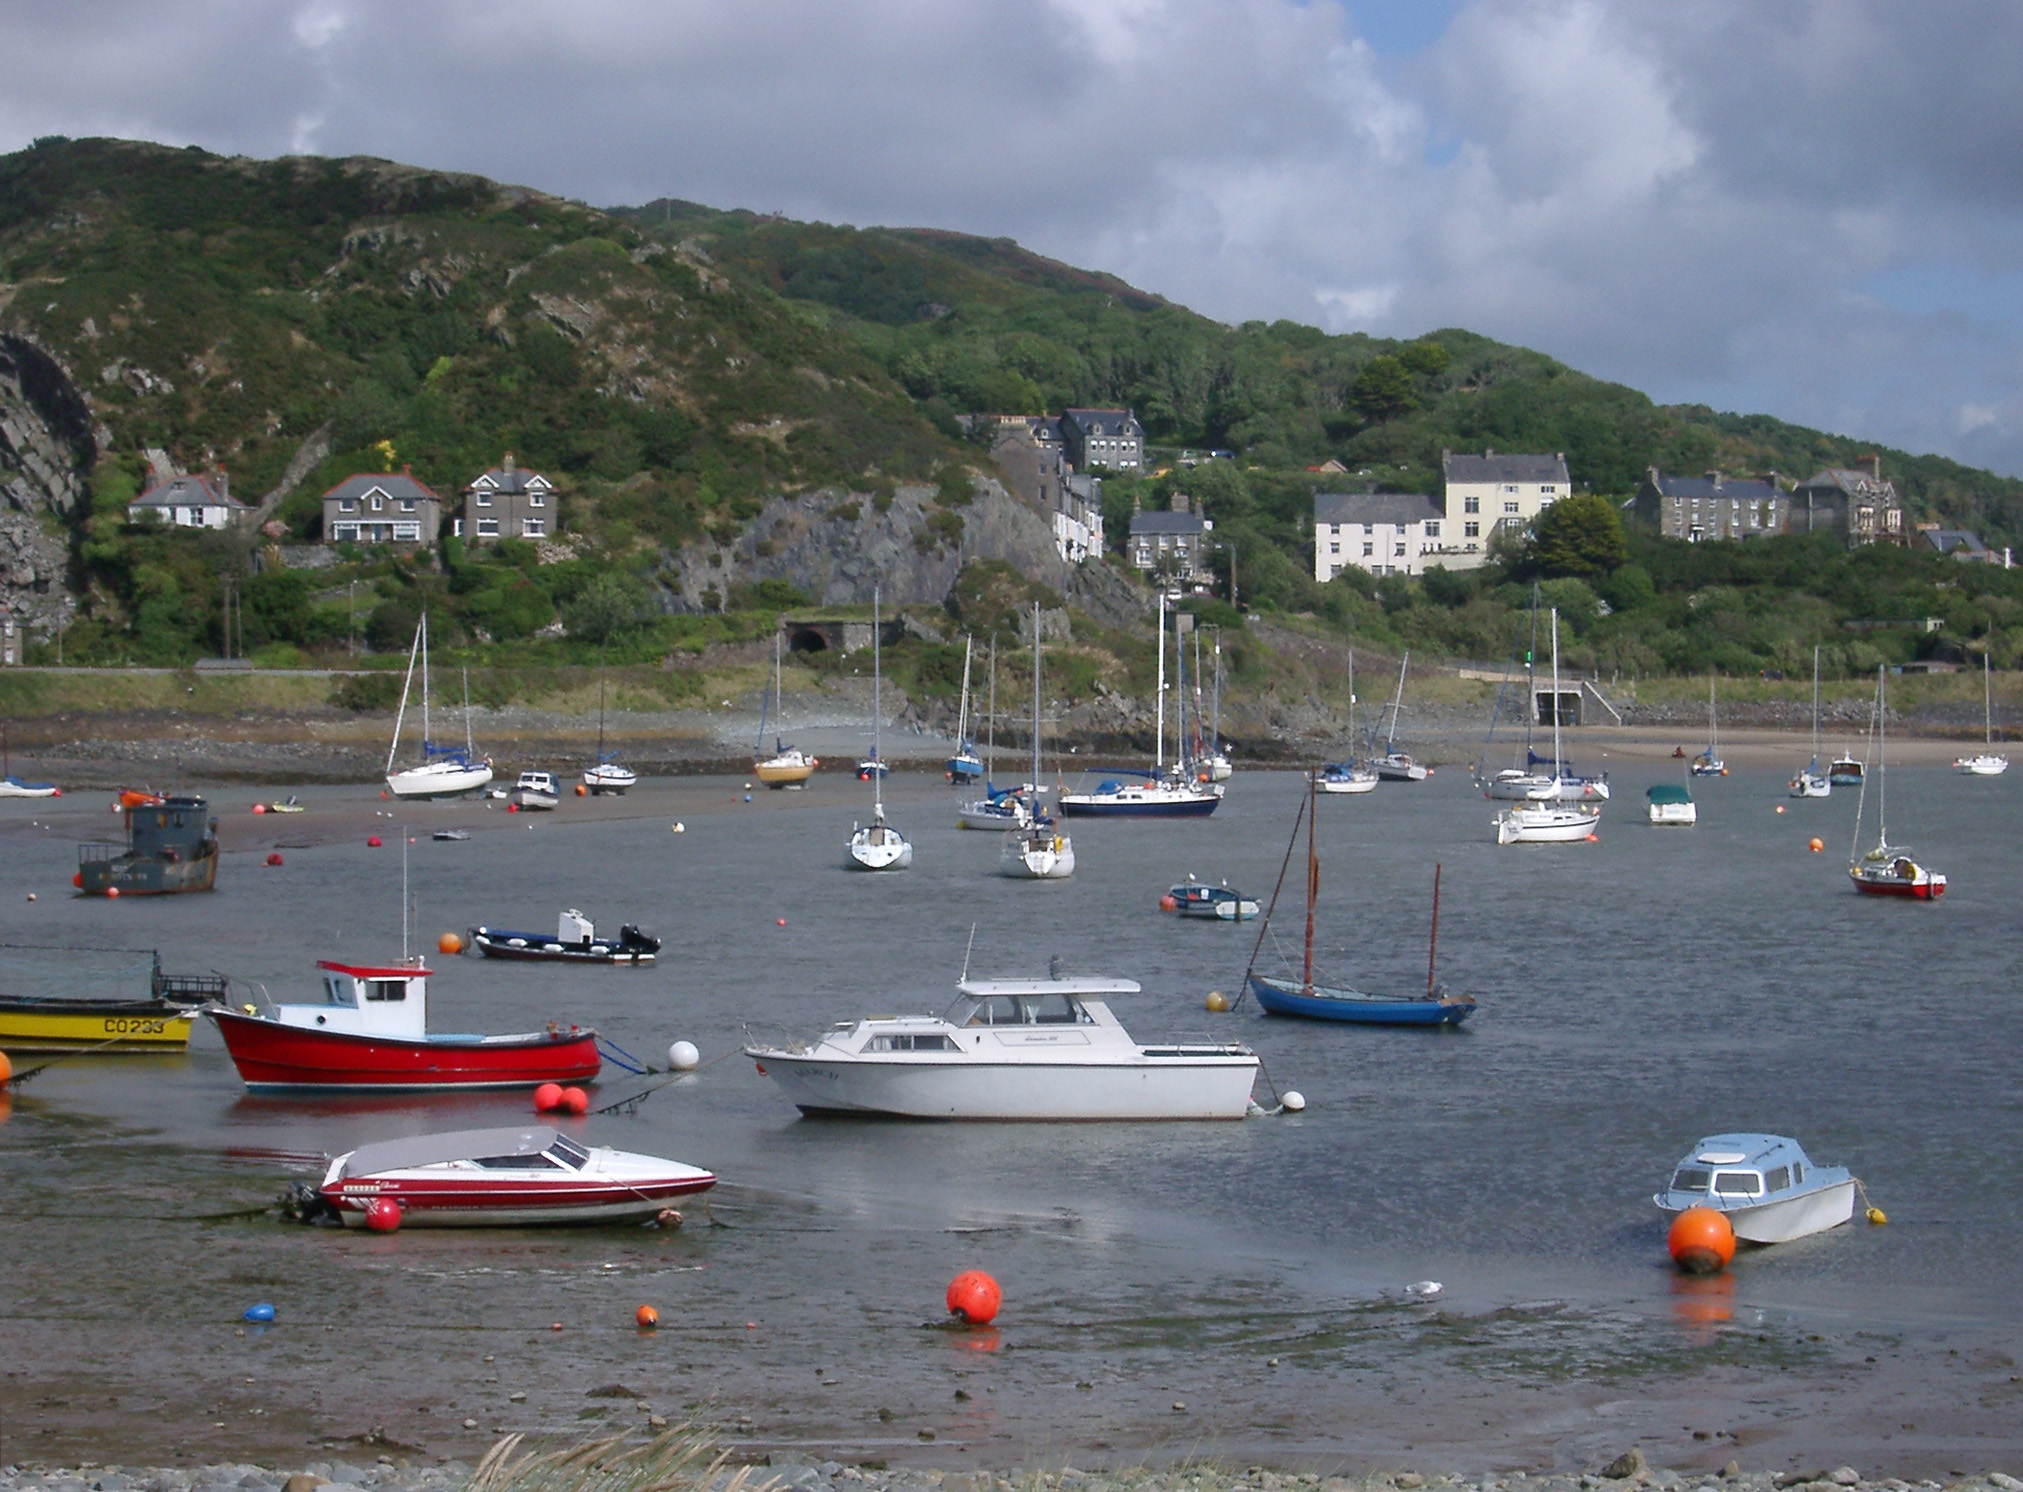 Sailboats and Fishing Boats Anchored in Harbor at Low Tide, Barmouth, Gwynedd, Wales